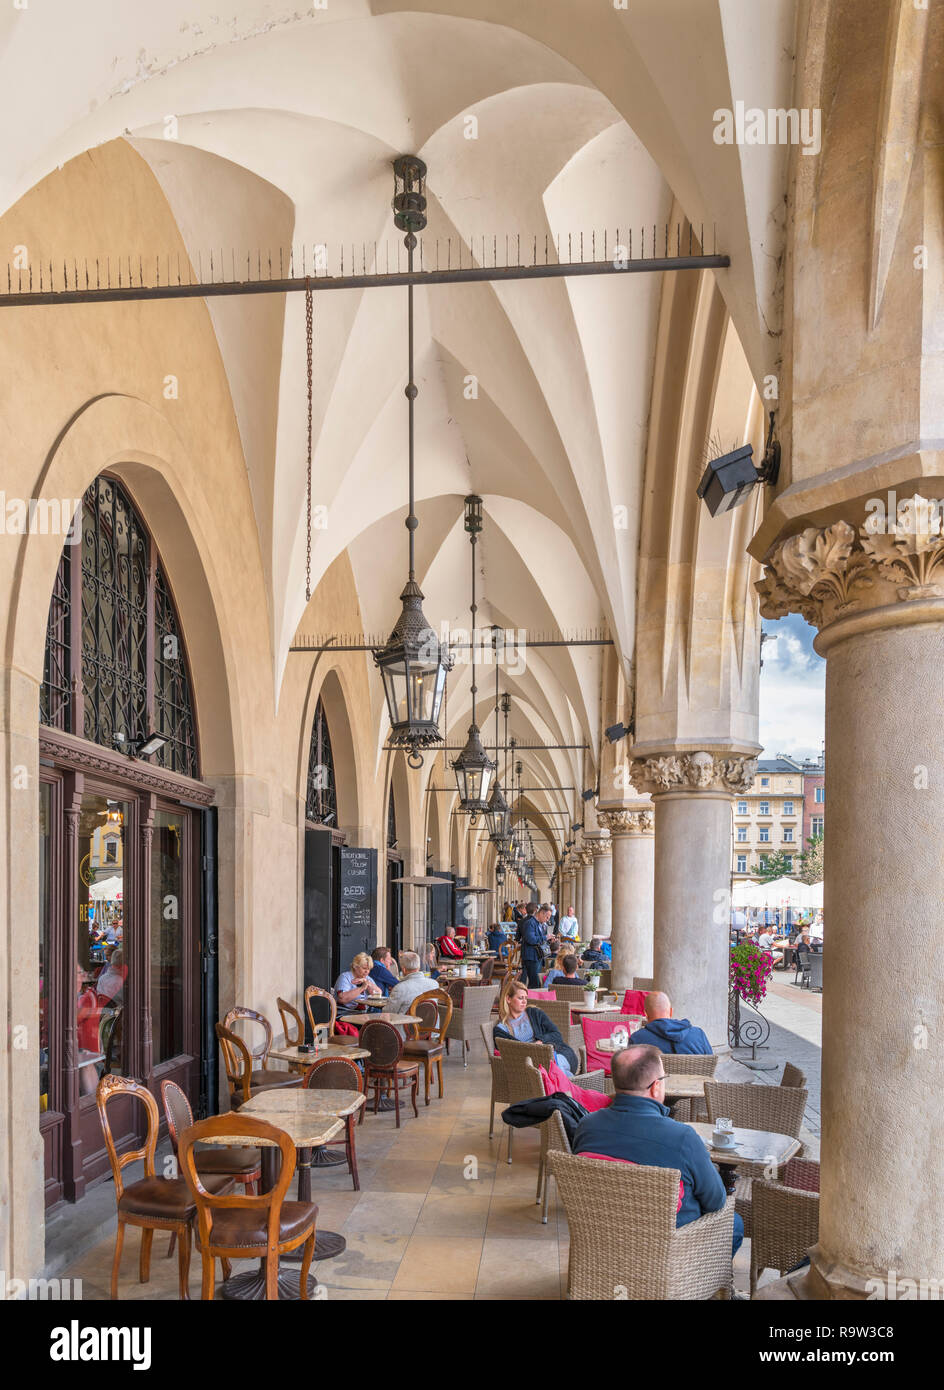 Cafe in the arcade round the Cloth Hall (Sukiennice), Main Square (Rynek Główny), Kraków, Poland - Stock Image